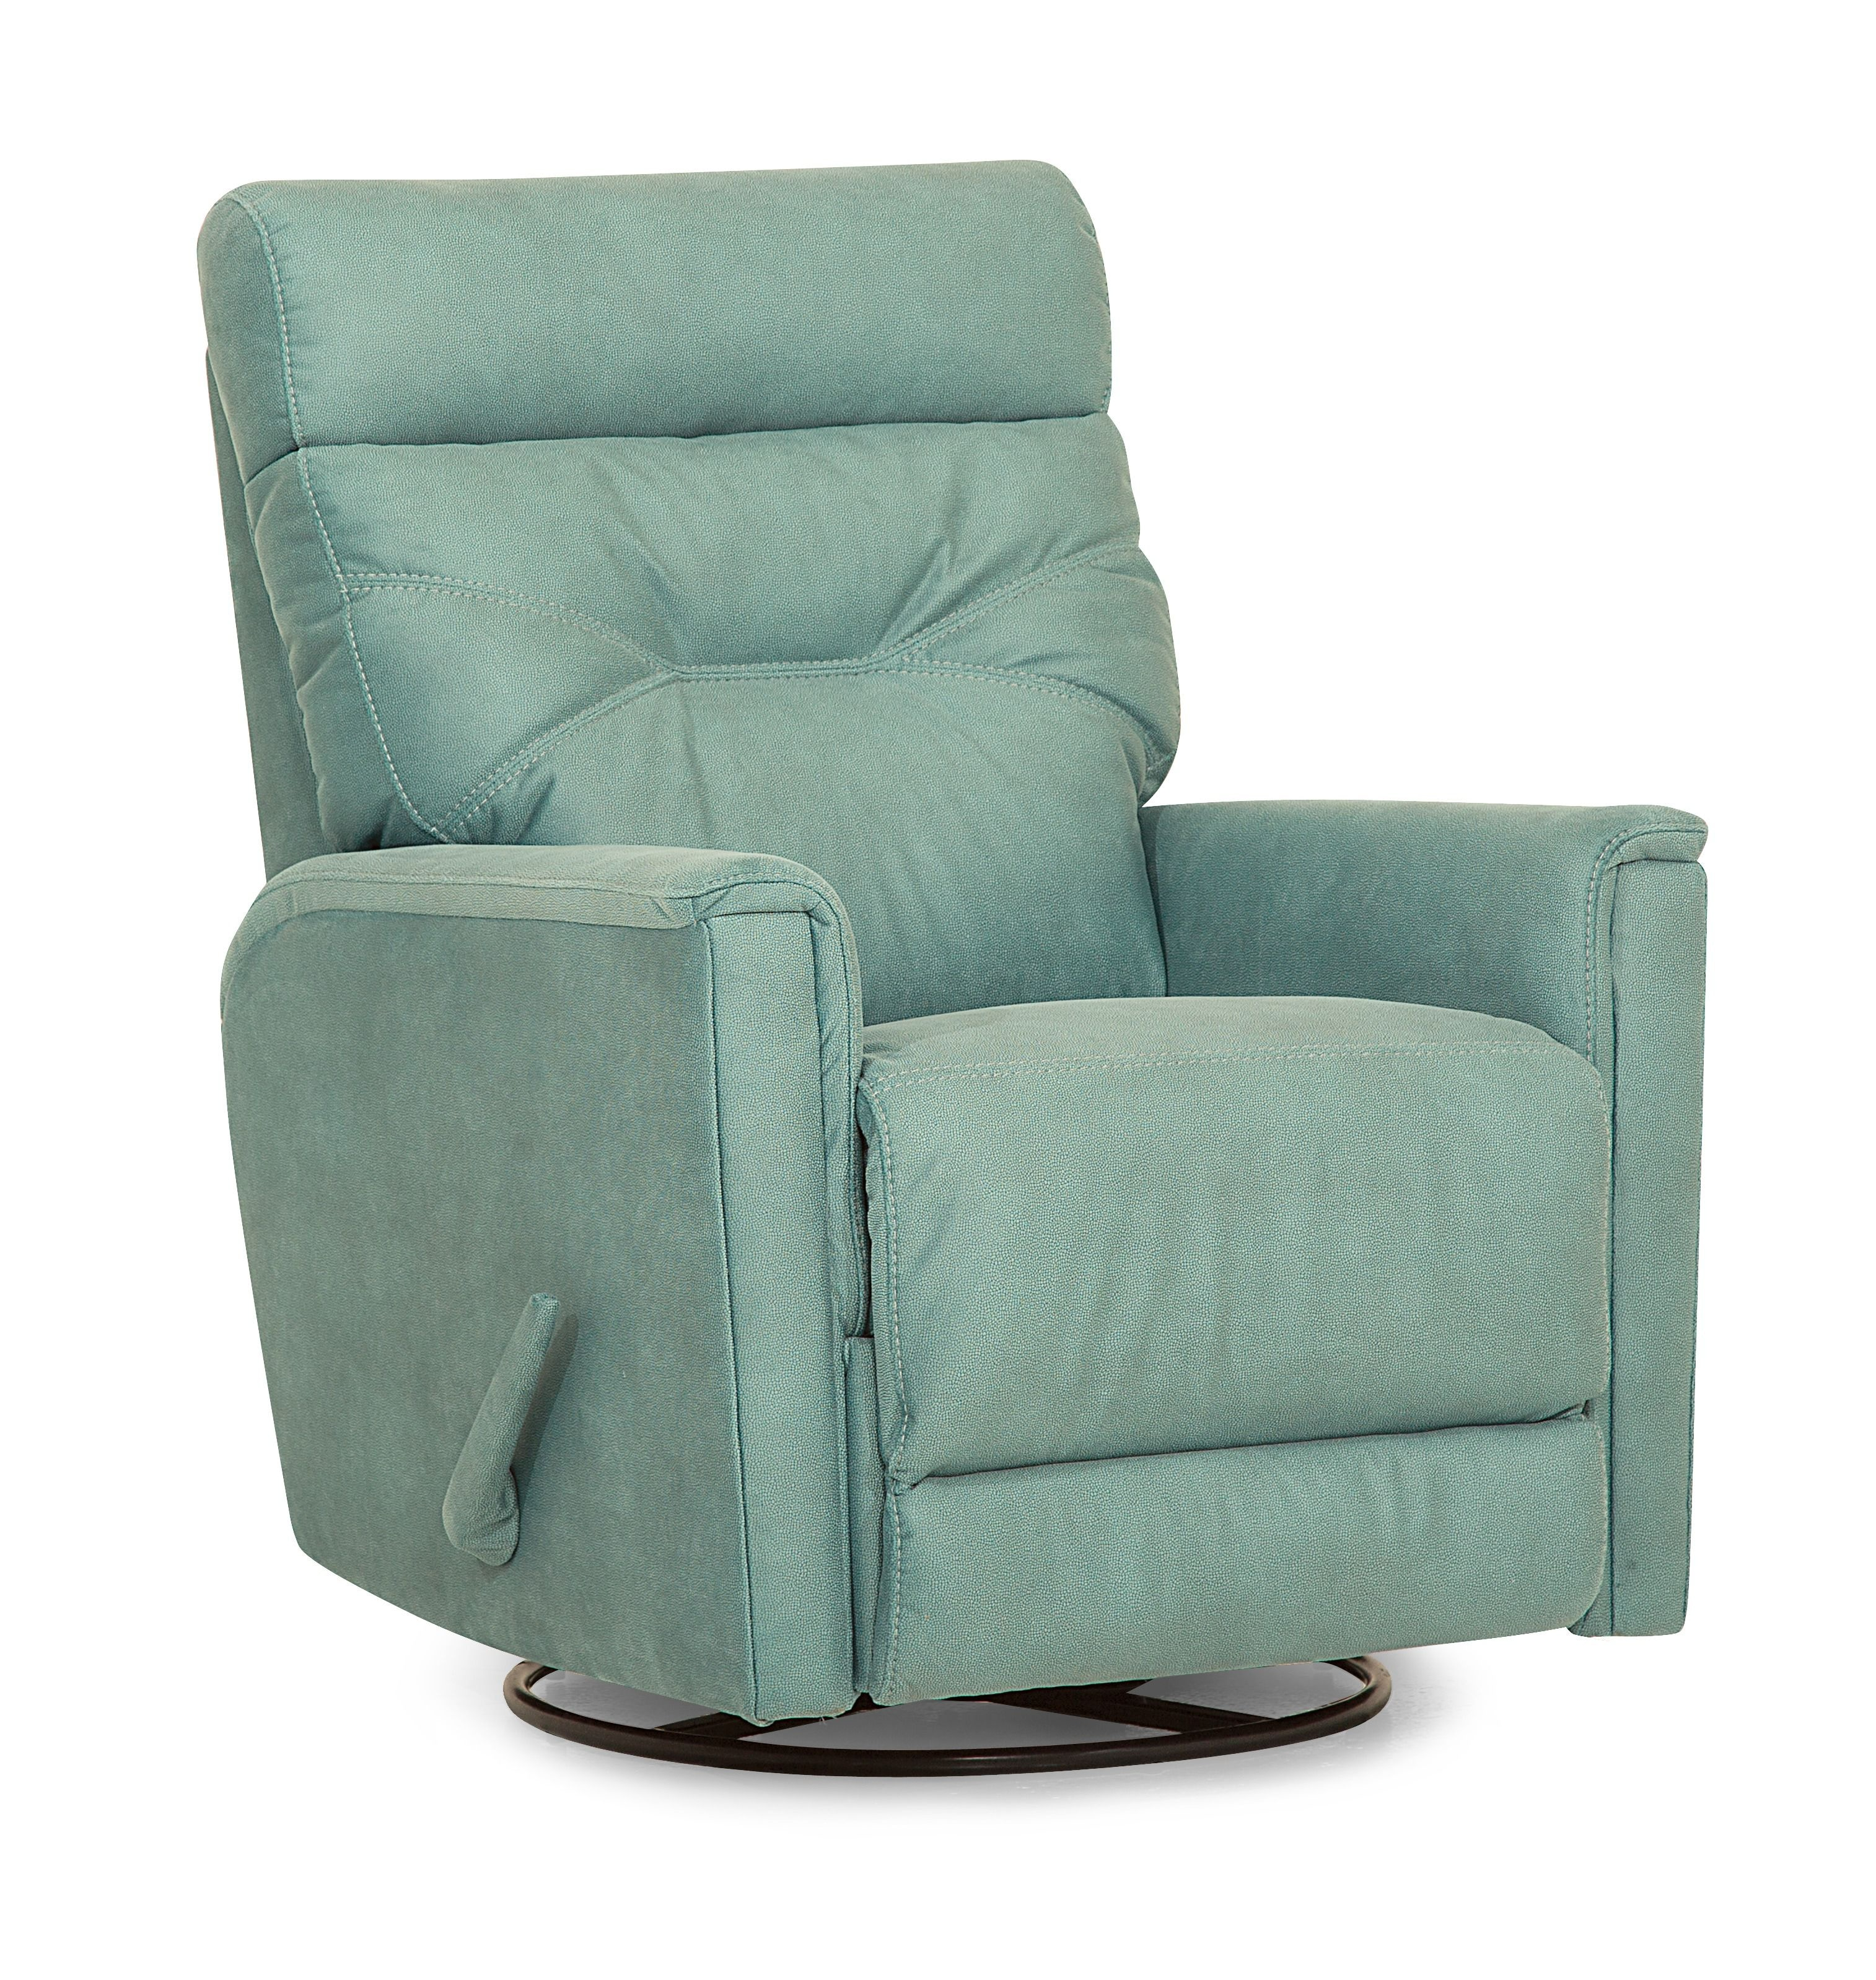 chairs that swivel and recline mission style for sale palliser furniture living room glider recliner 43003 34 at russell s fine